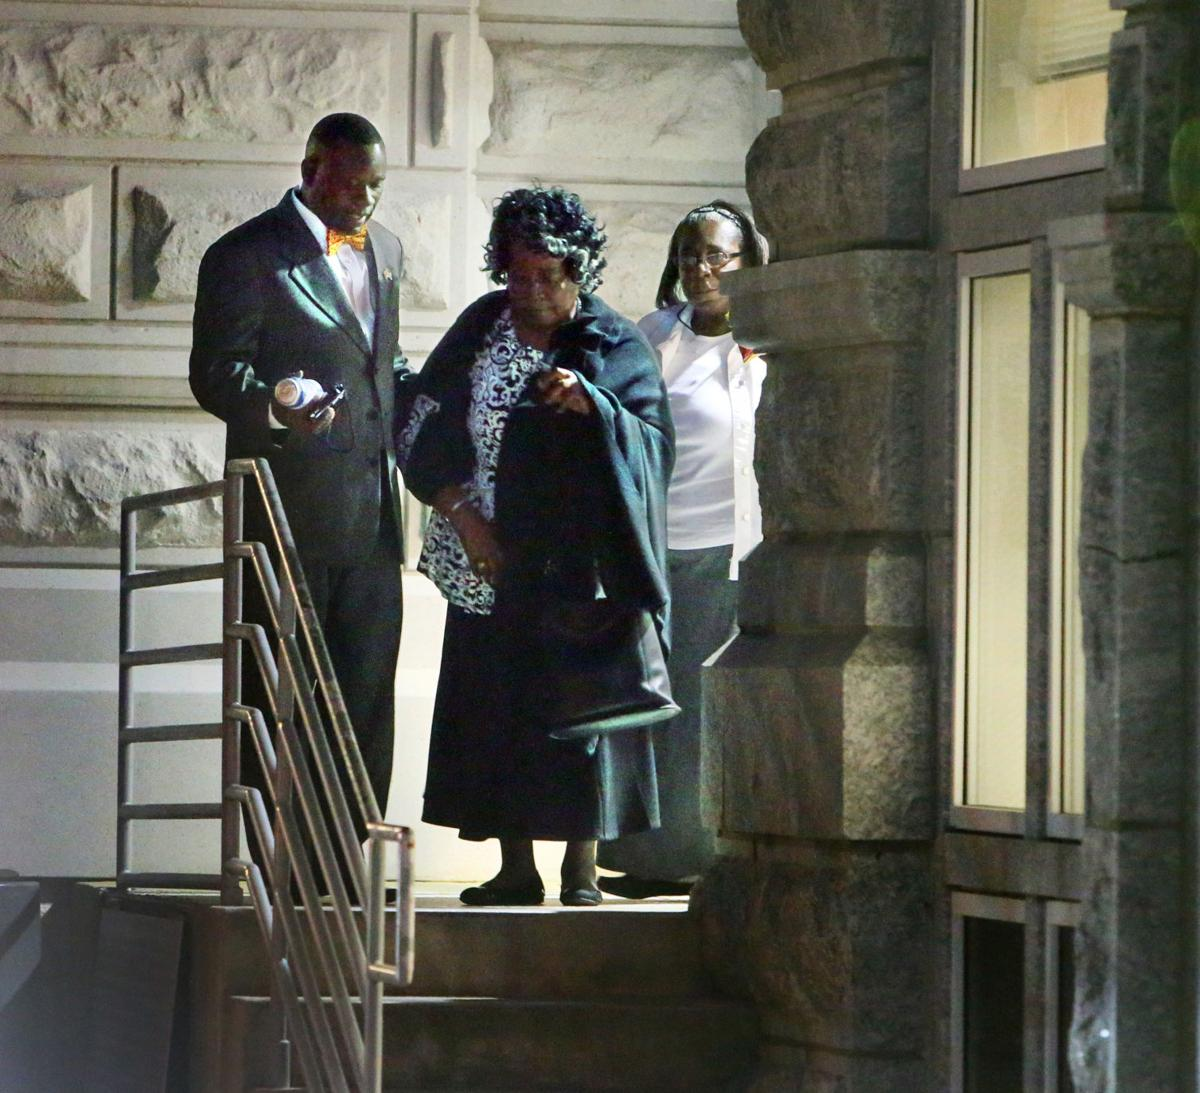 Walter Scott's mother leaves courthouse